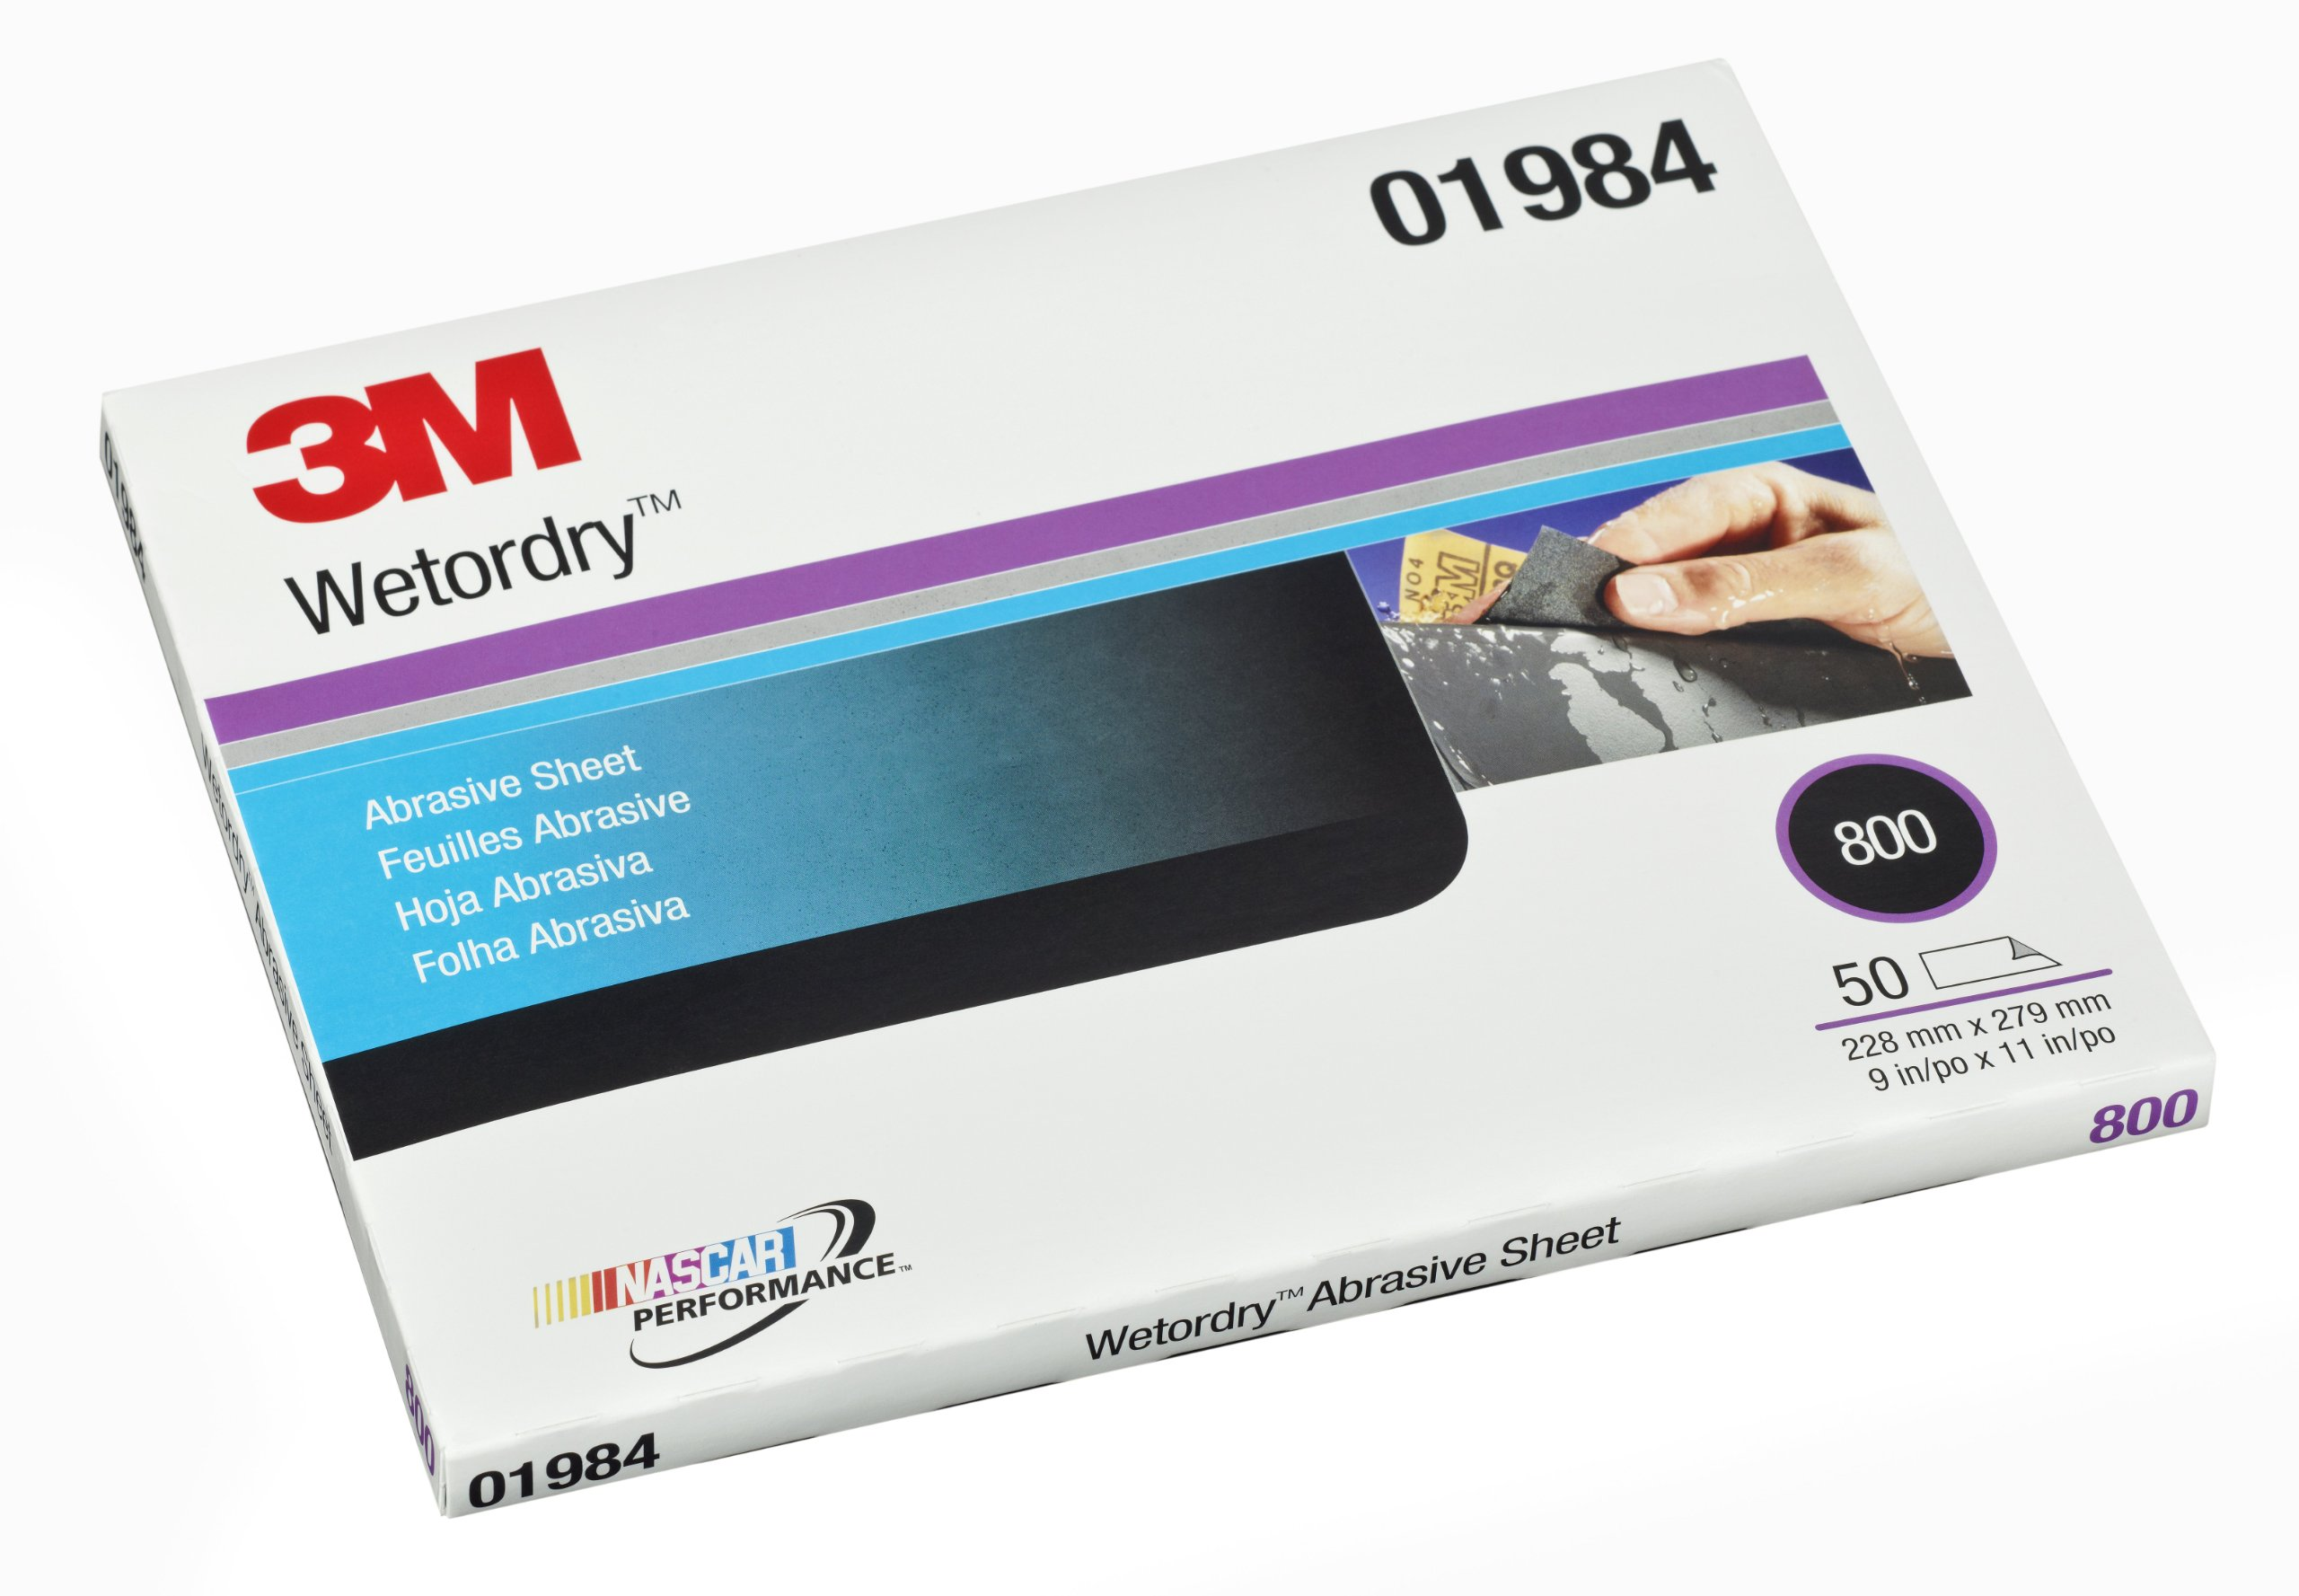 3M 01984 Wetordry 9'' x 11'' 800 Grit Abrasive Sheet by 3M (Image #1)